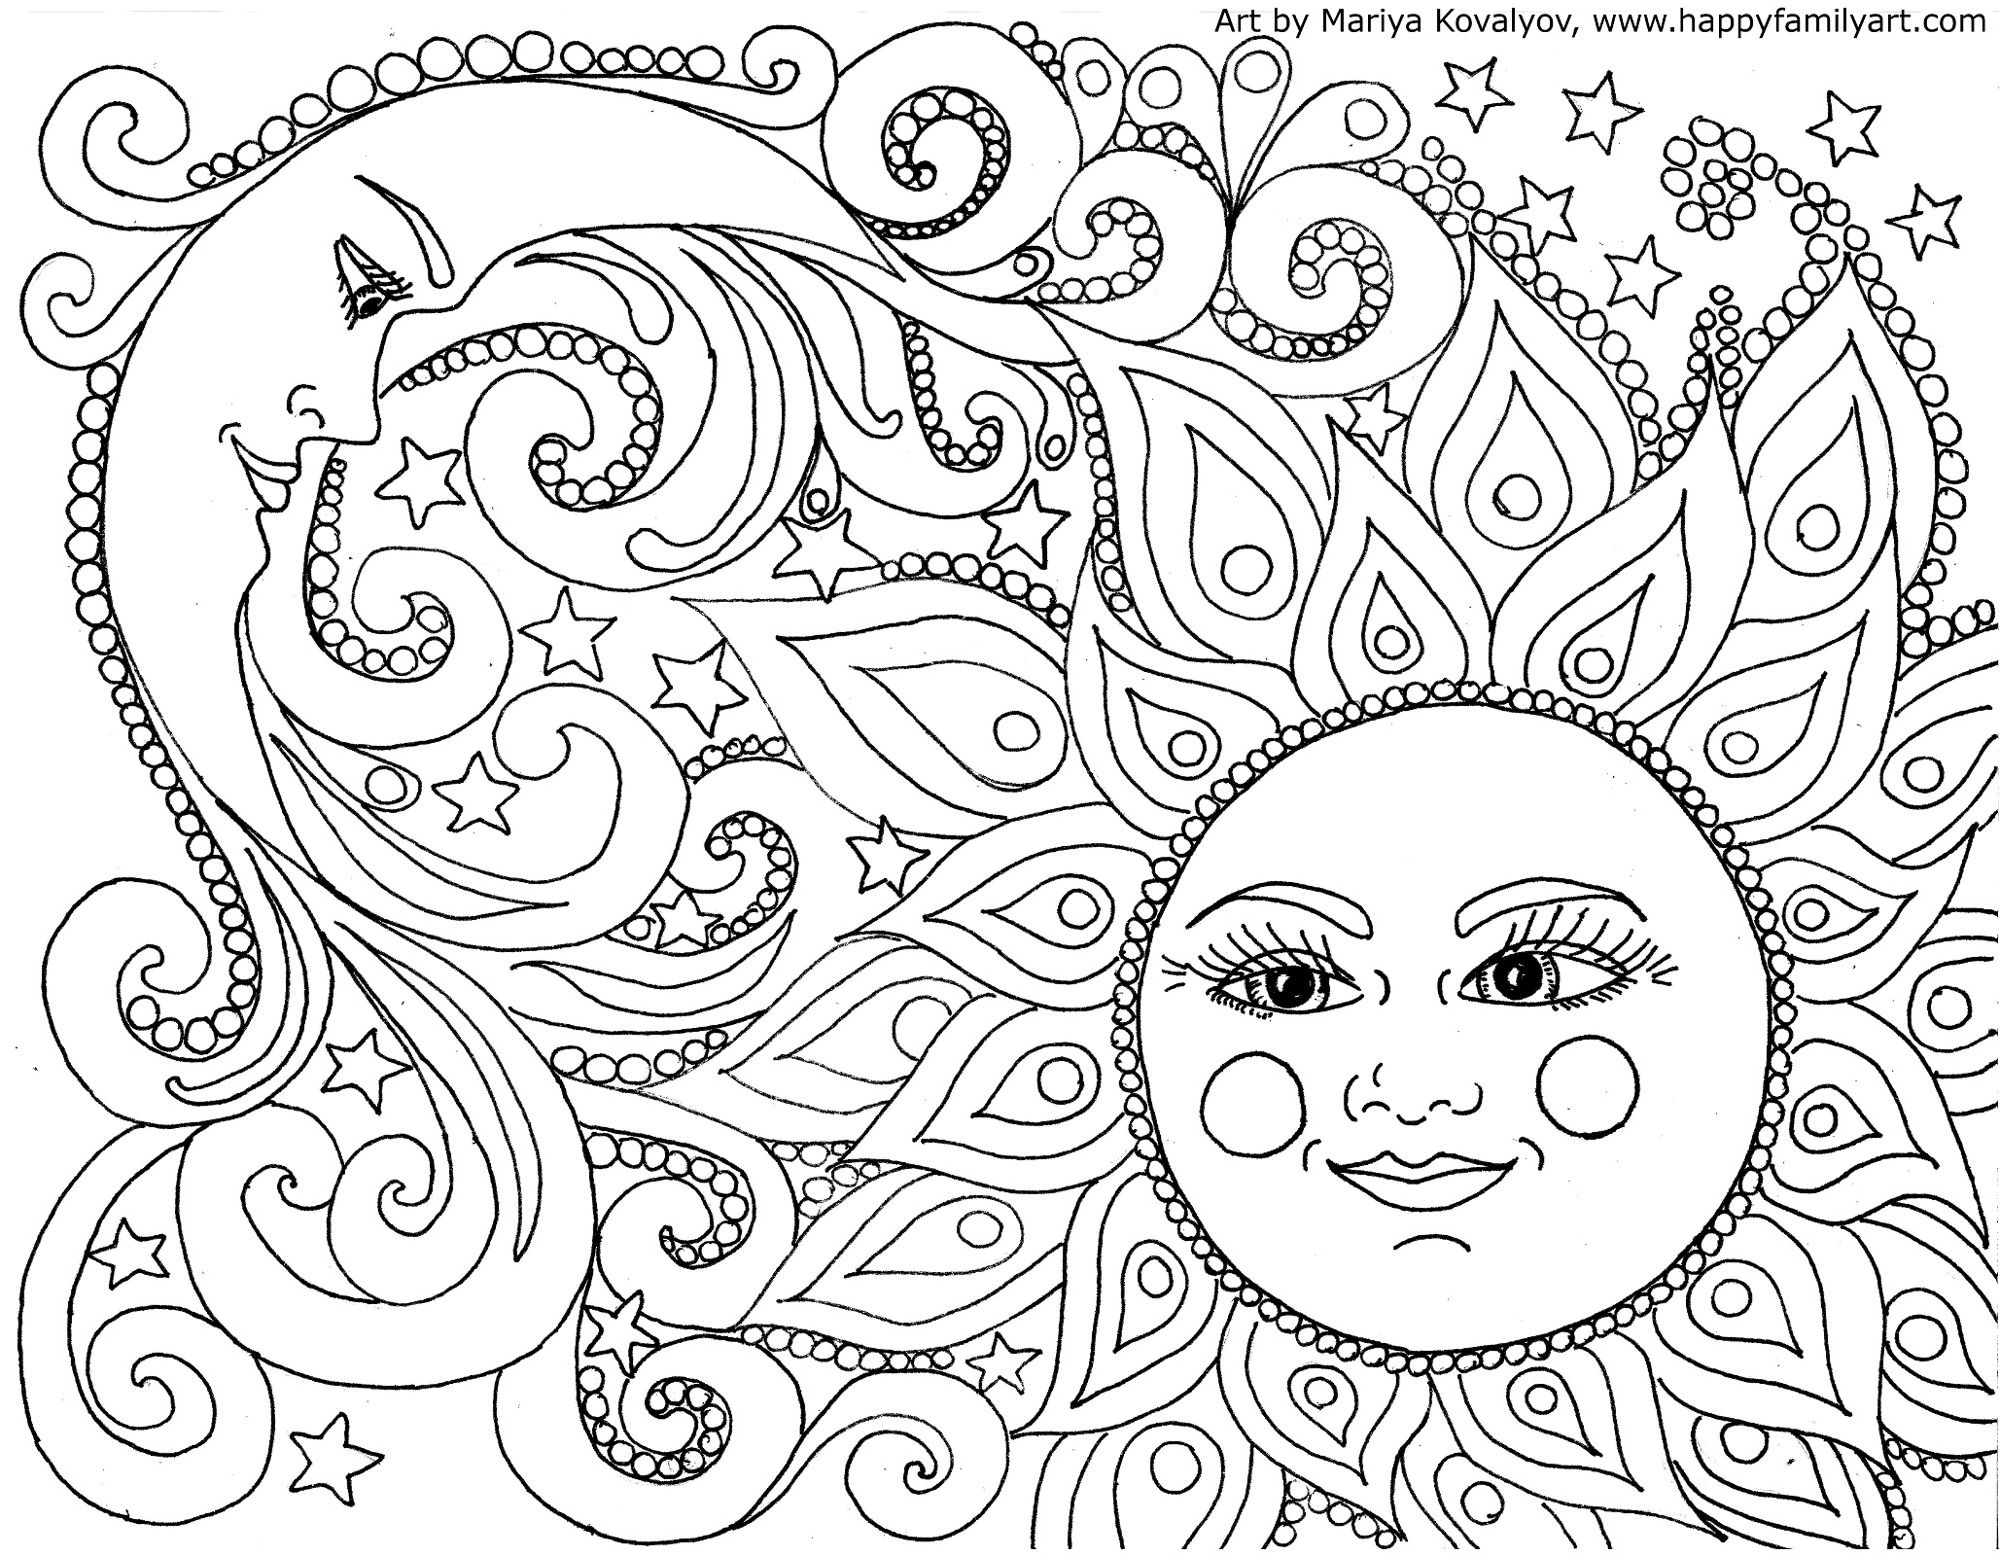 Free coloring pages for adults - I Made Many Great Fun And Original Coloring Pages Color Your Heart Out